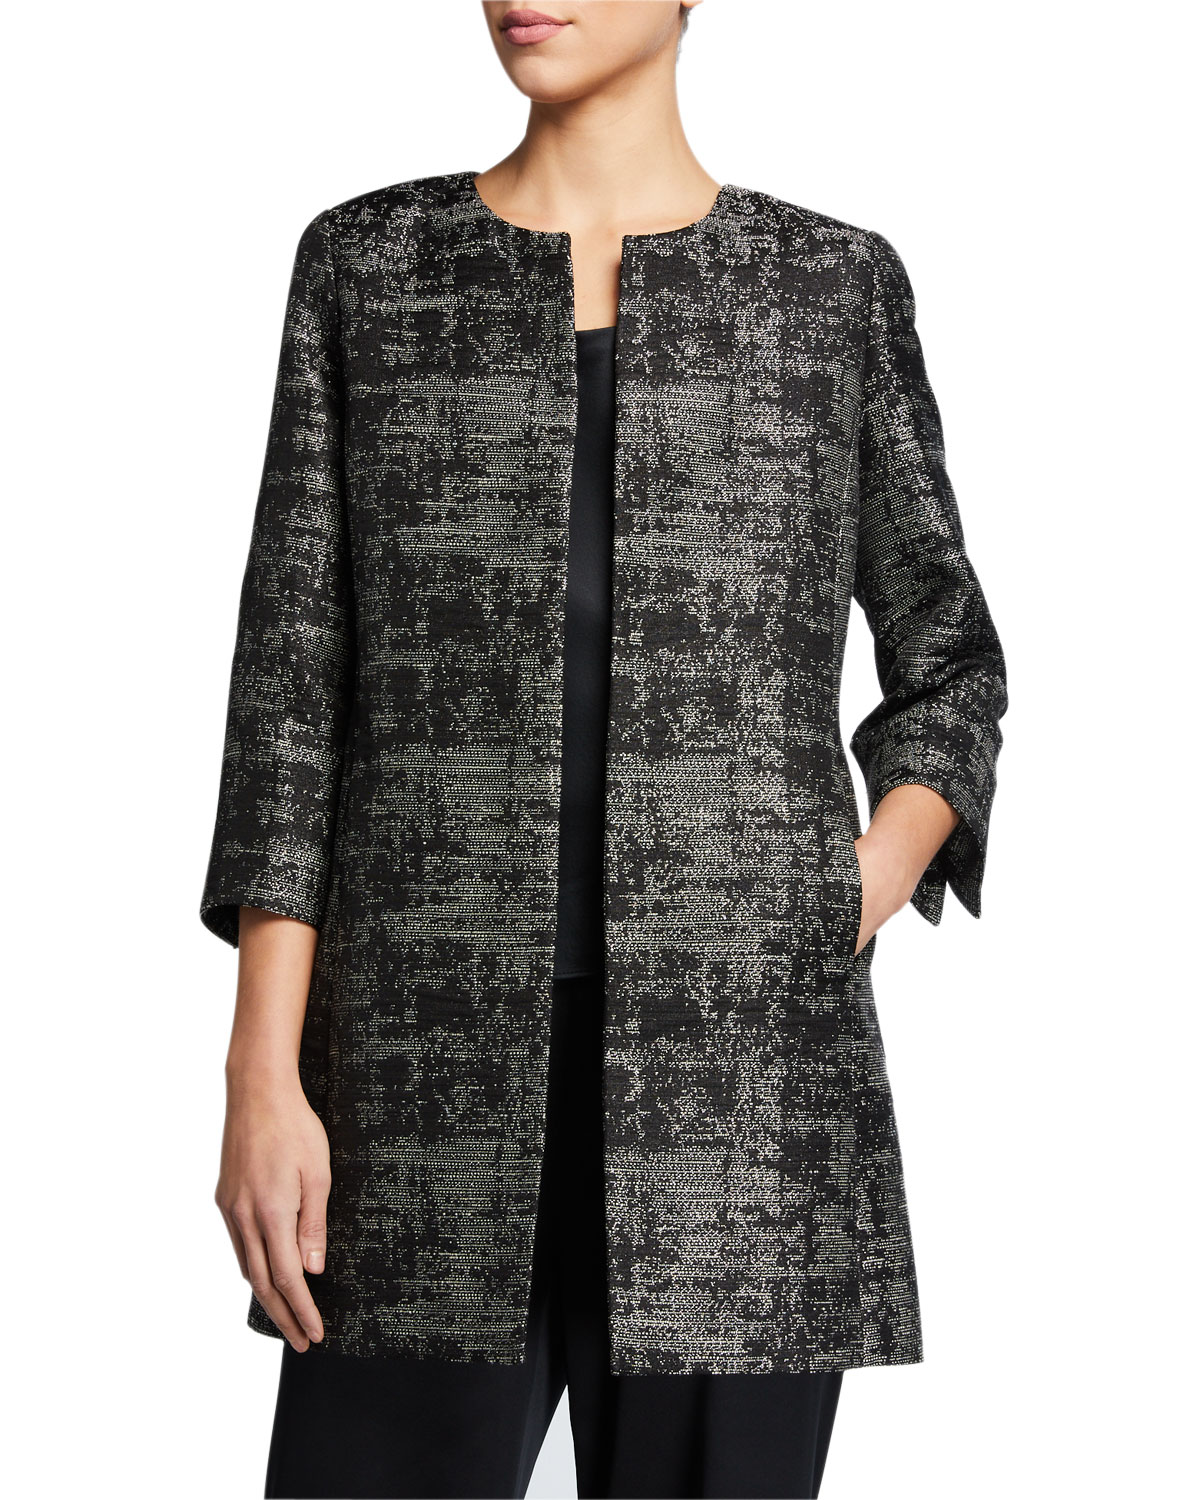 Moonlight Jacquard 3/4 Sleeve Jacket by Eileen Fisher